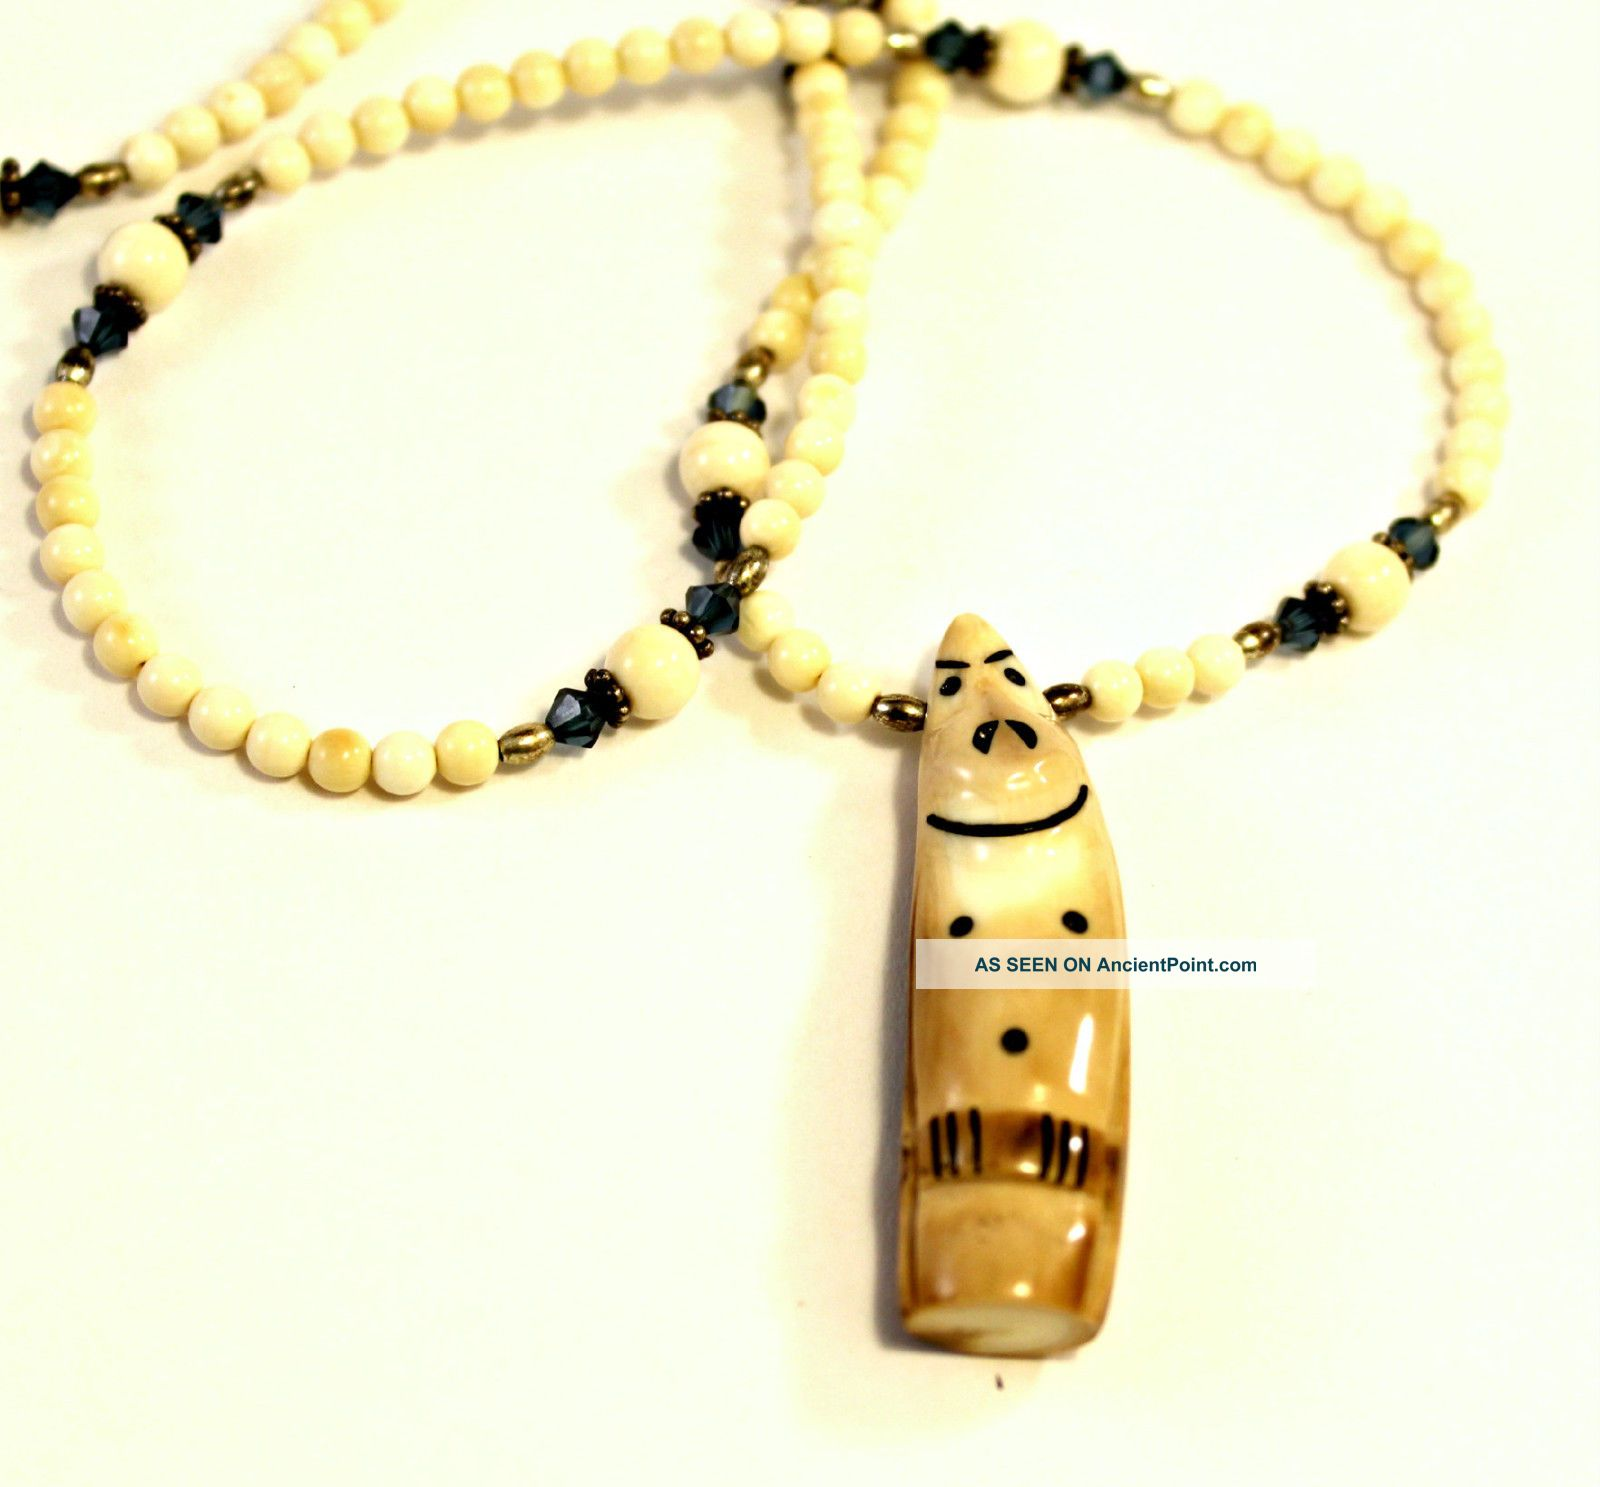 Alaskan Eskimo Billiken Totemic Mammoth Ivory Swarovski Crystals Beads Necklace Native American photo